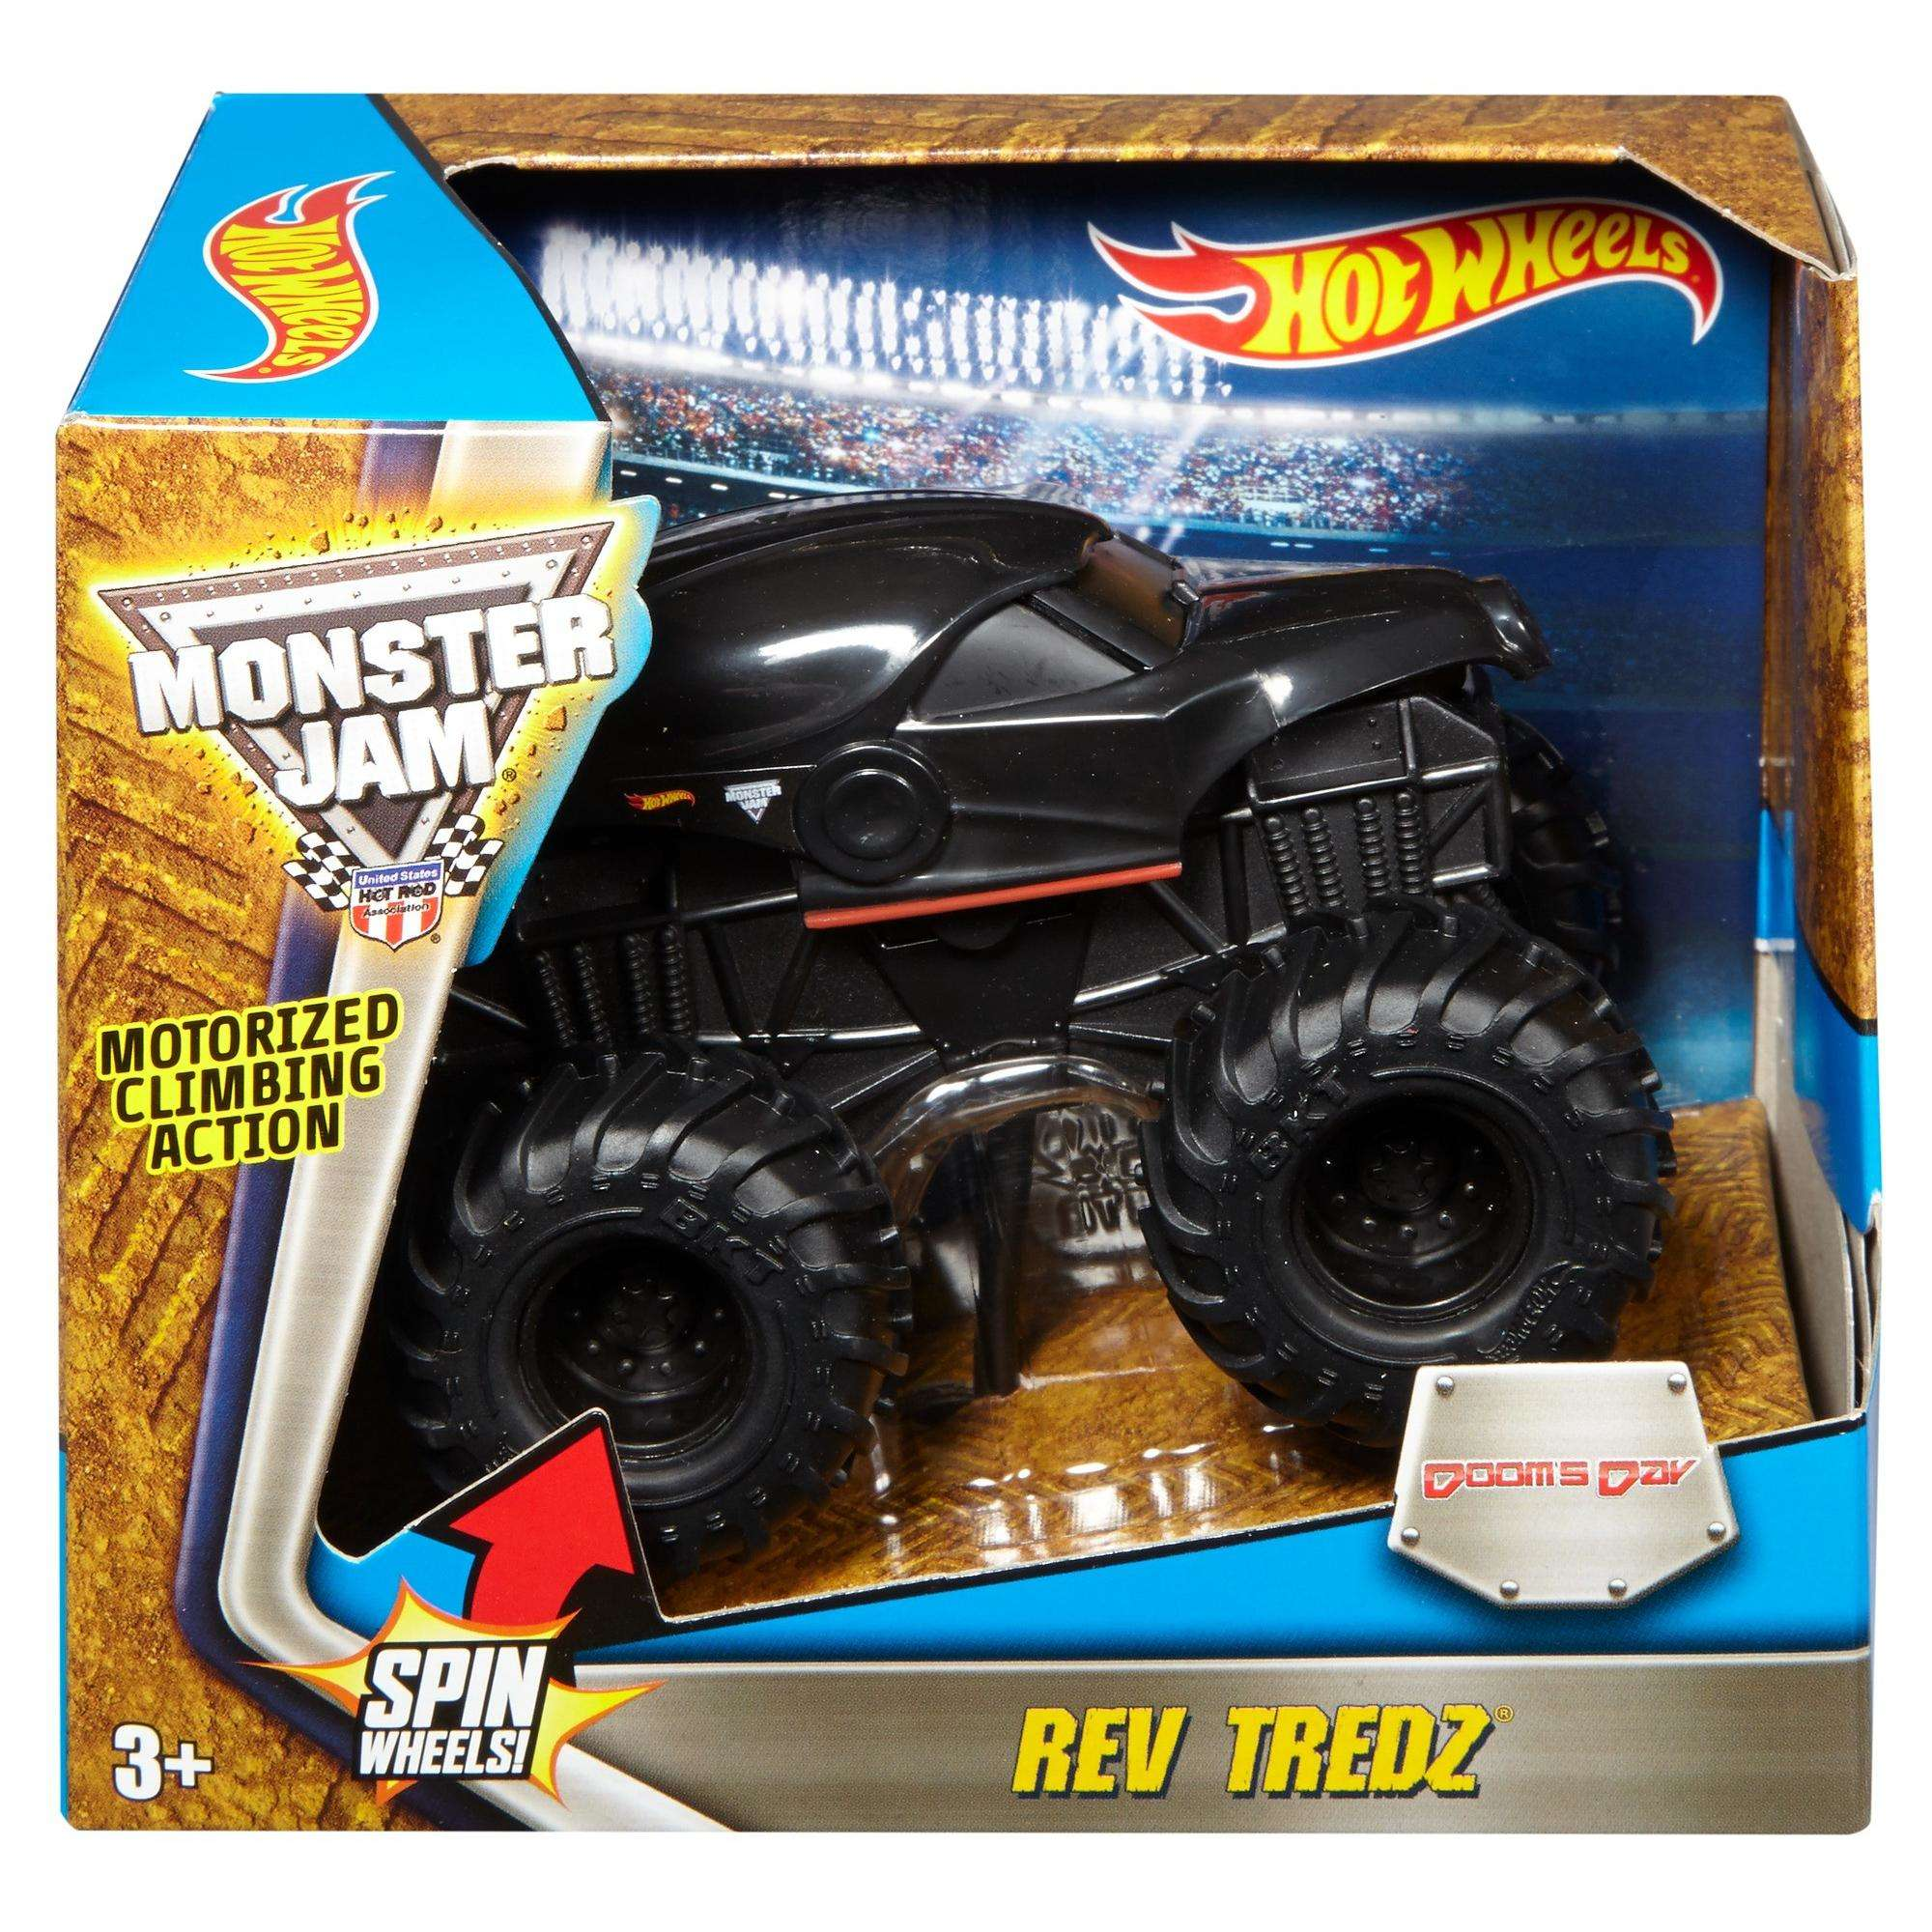 Hot Wheels Monster Jam Rev Tredz Doom's Day Vehicle 1:43 Scale Vehicle